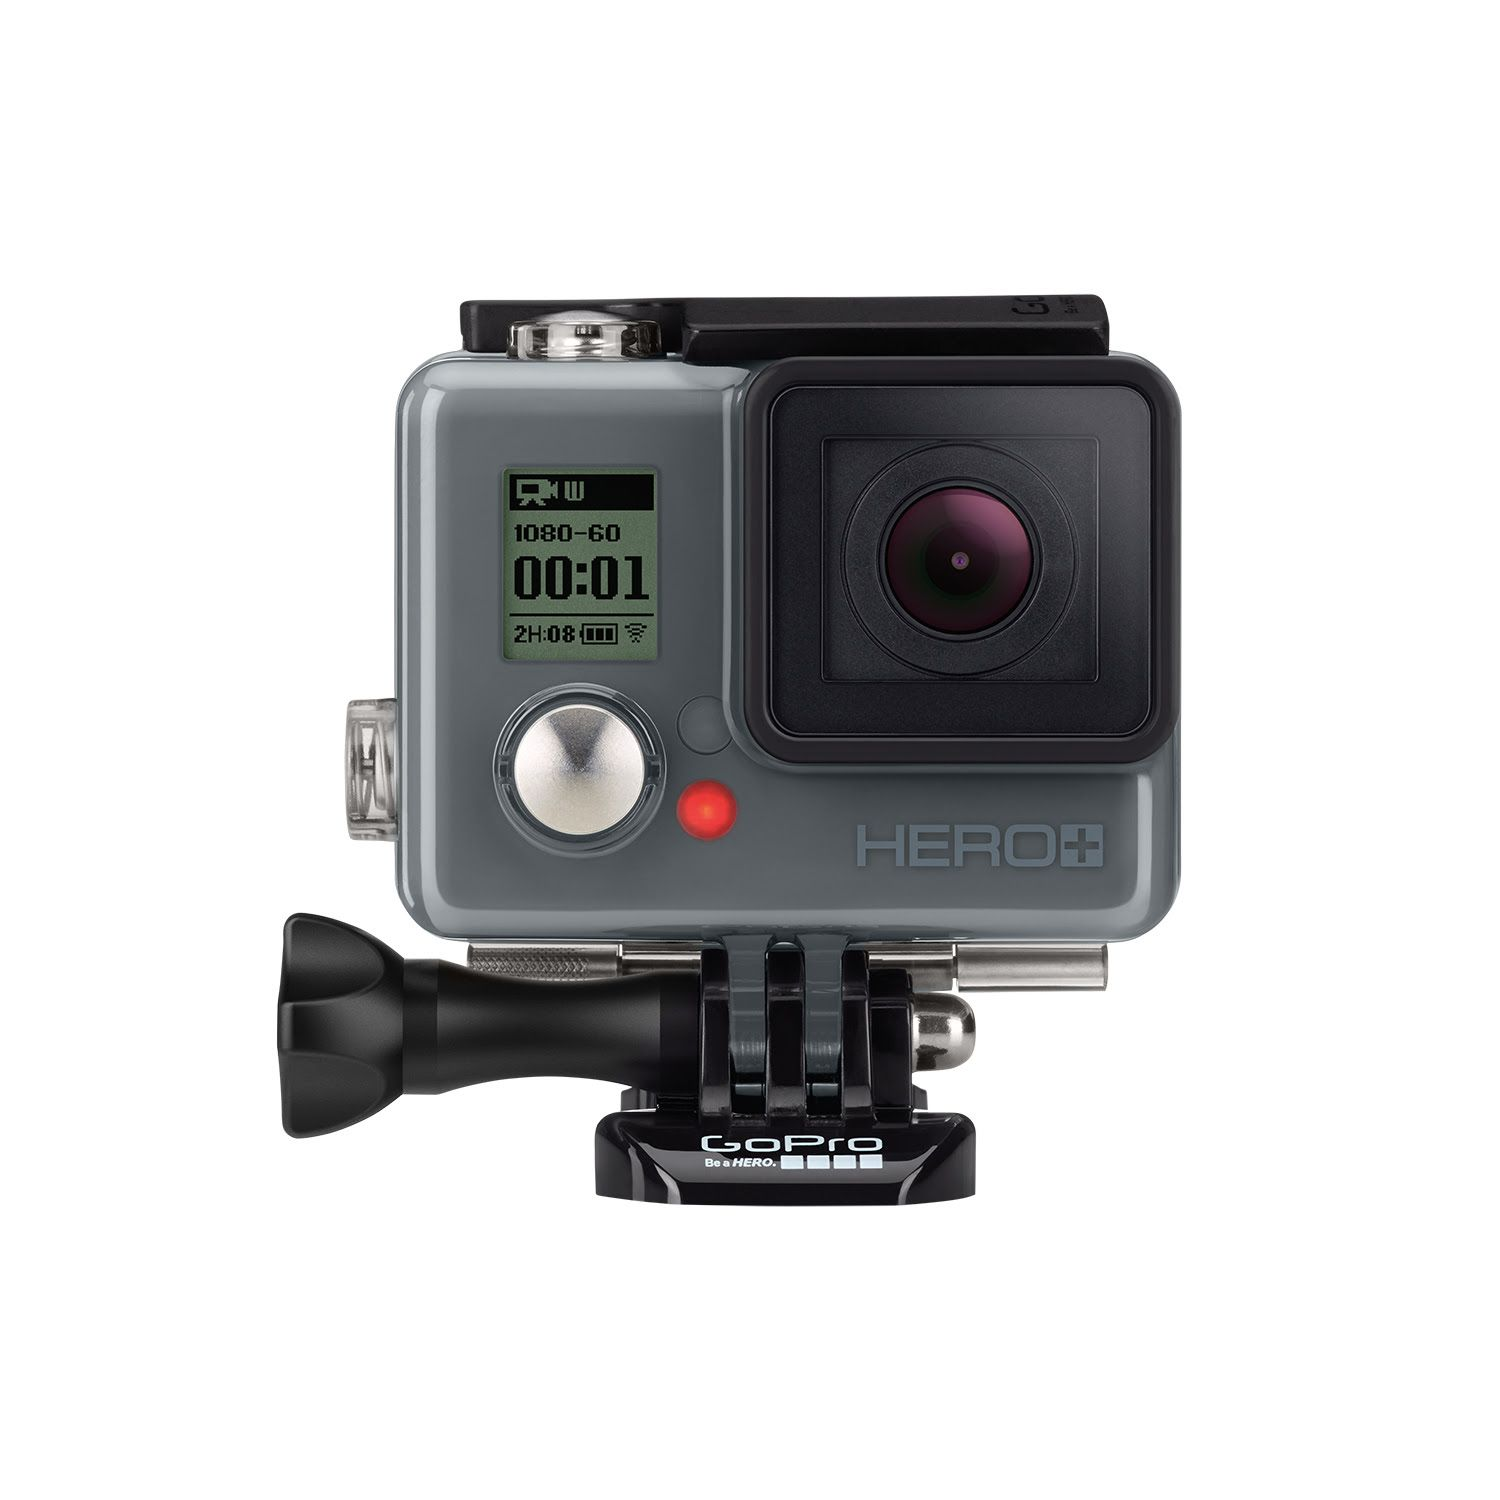 Nova HERO+ da GoPro - Geek Chic